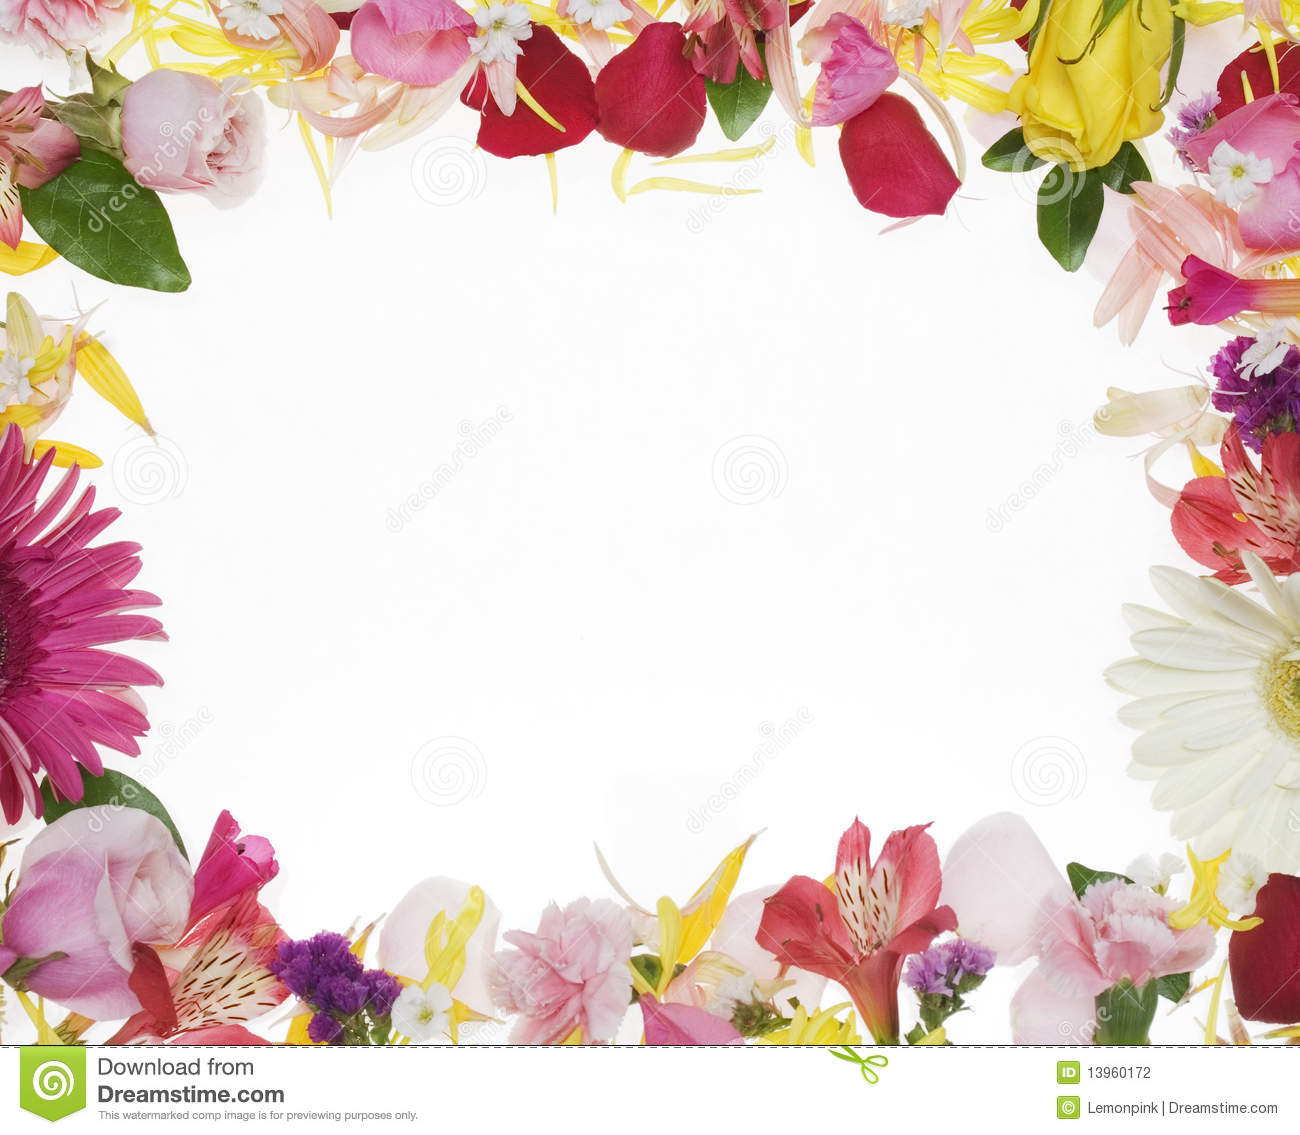 Wall Stickers How To Apply Flower Border Stock Photo Image Of Yellow Background